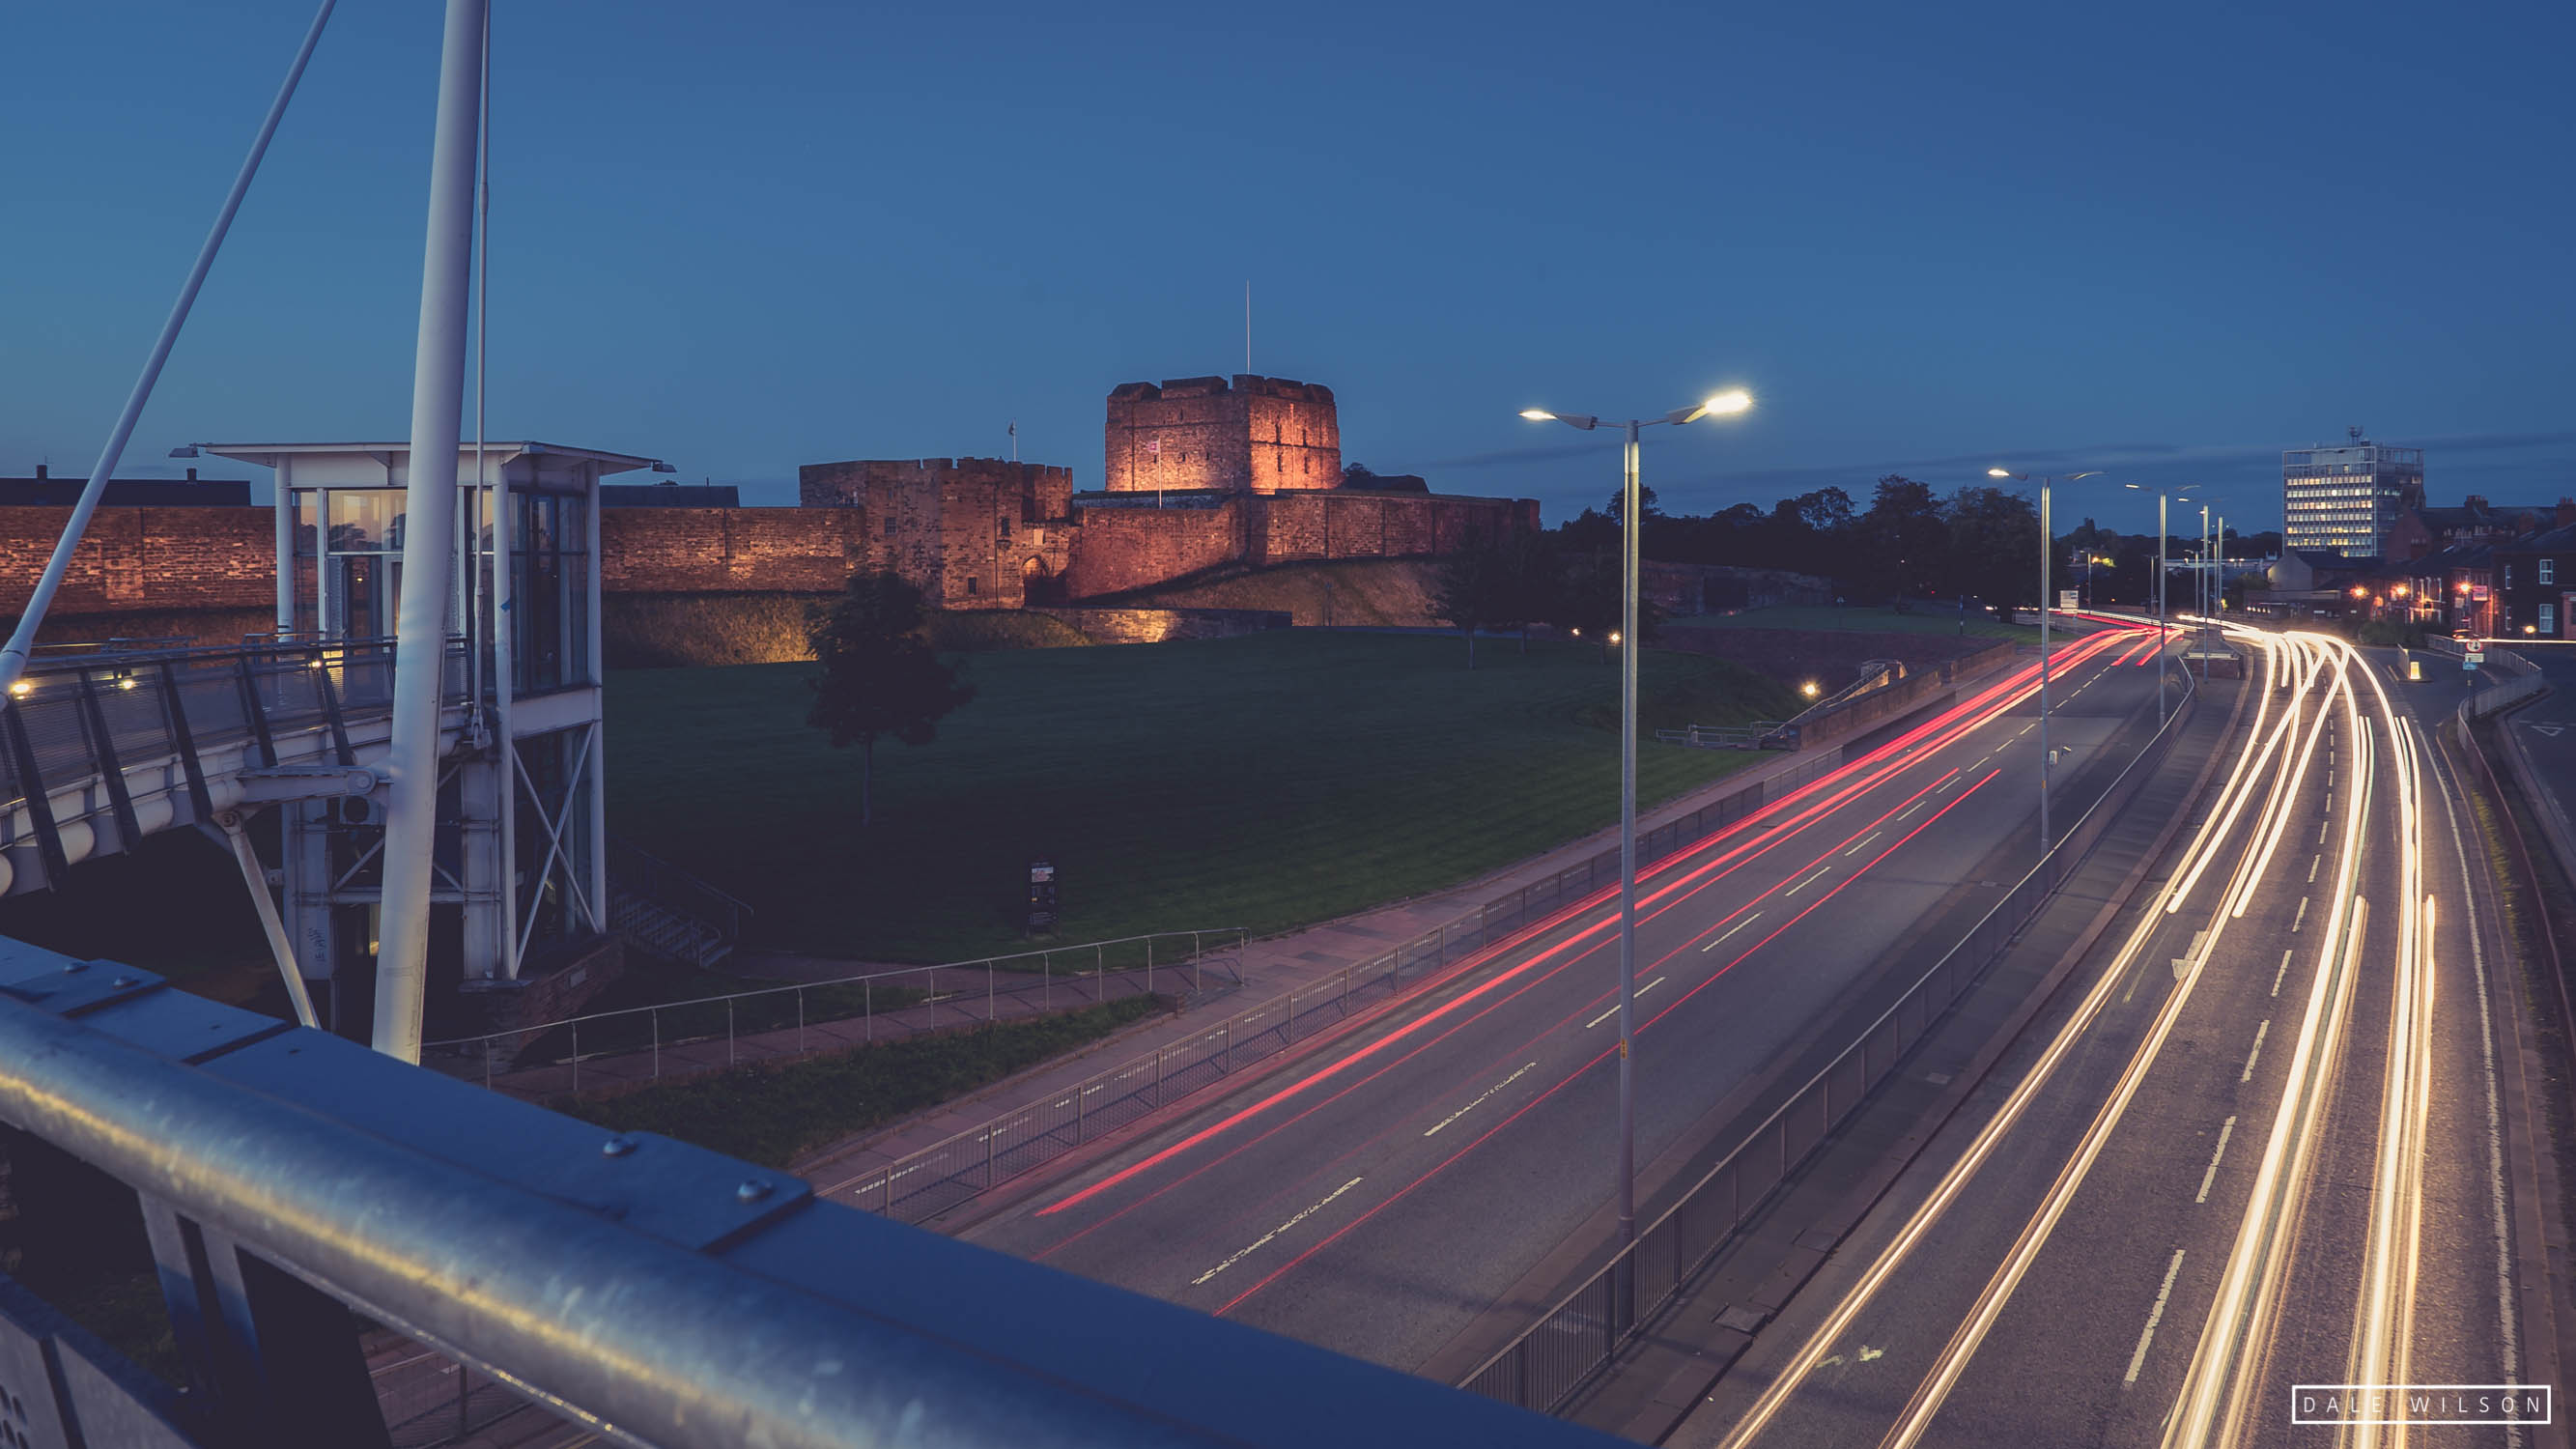 Carlisle Castle with long exposure of cars under the Millennium Bridge Castle Way Carlisle.